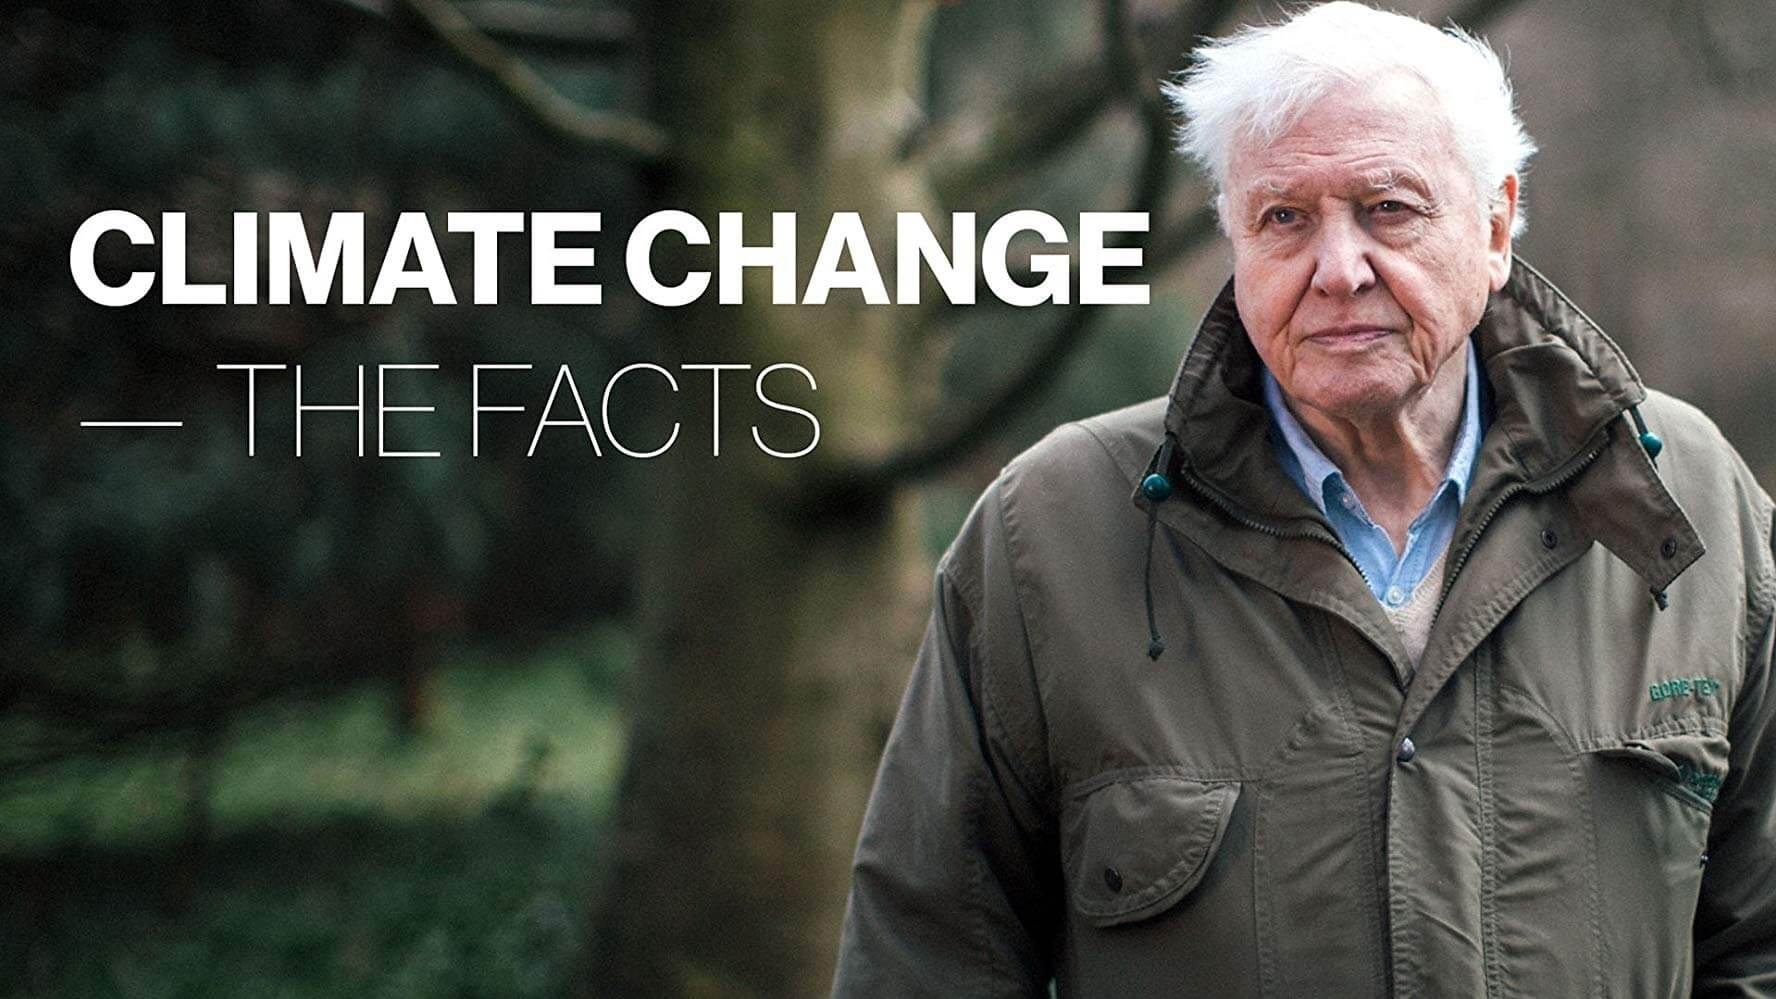 This David Attenborough Documentary Will Make You An Environmentalist